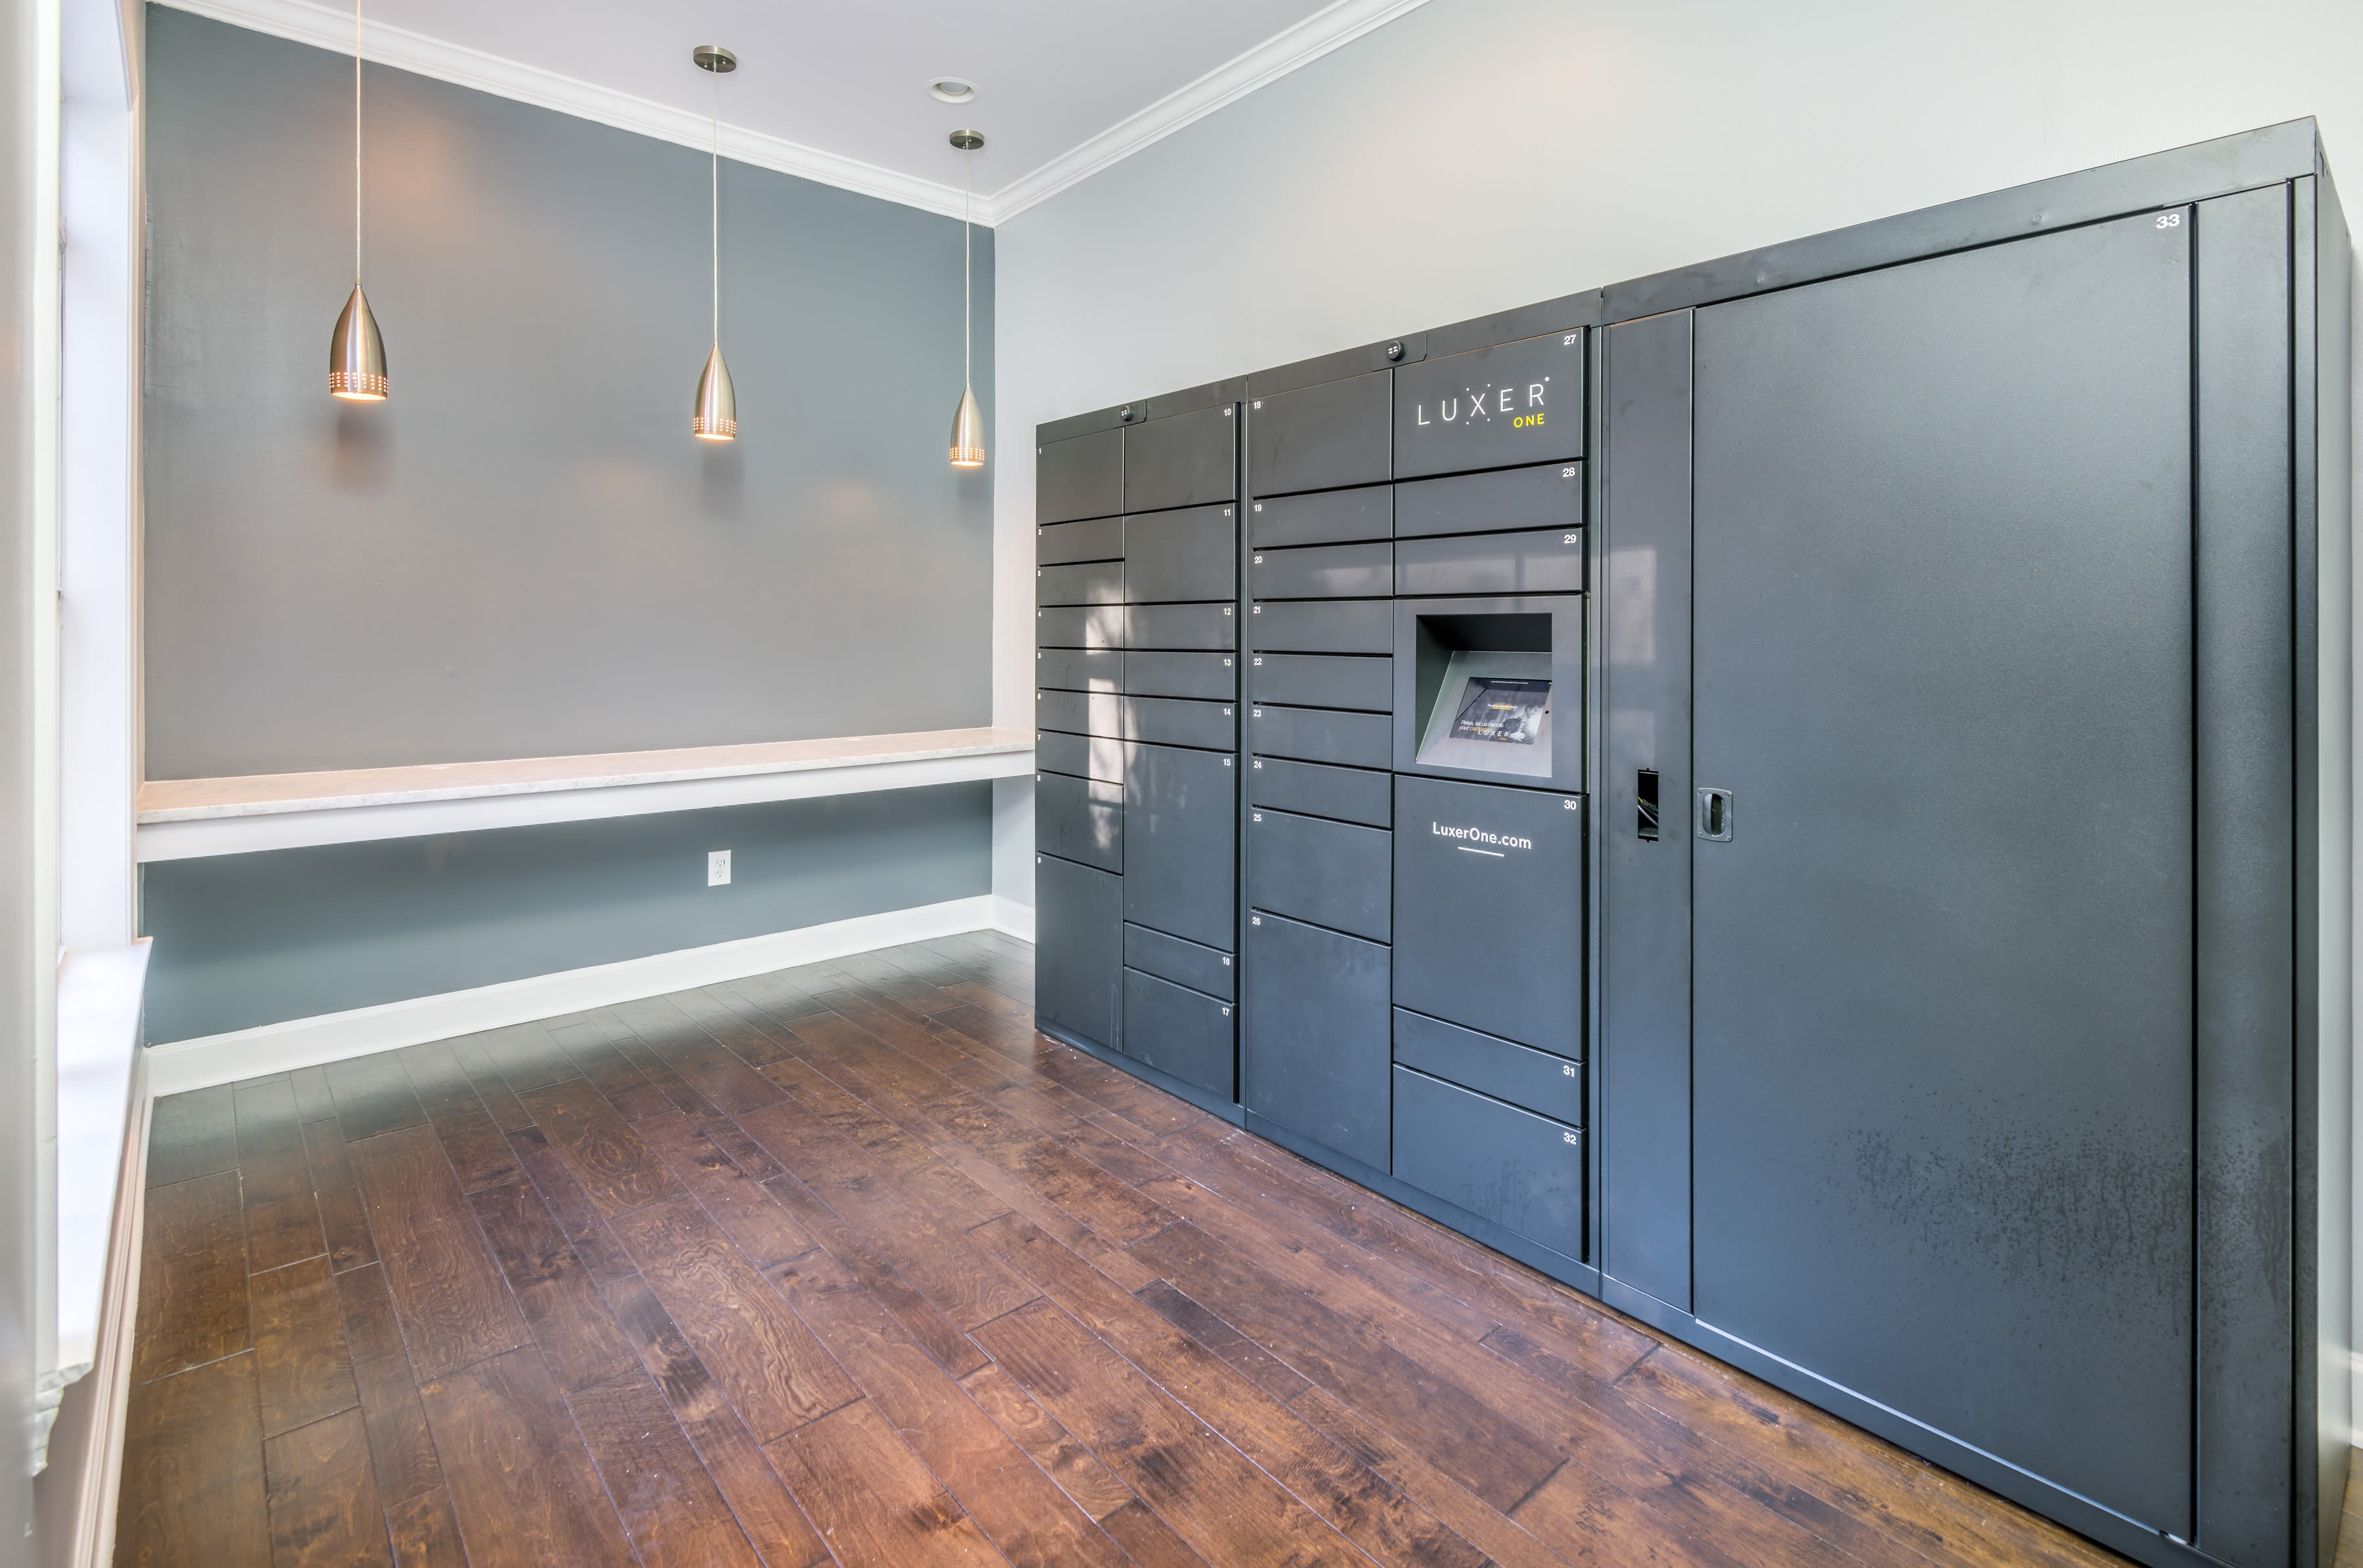 Storage lockers for residents at The Oxford in Conyers, Georgia